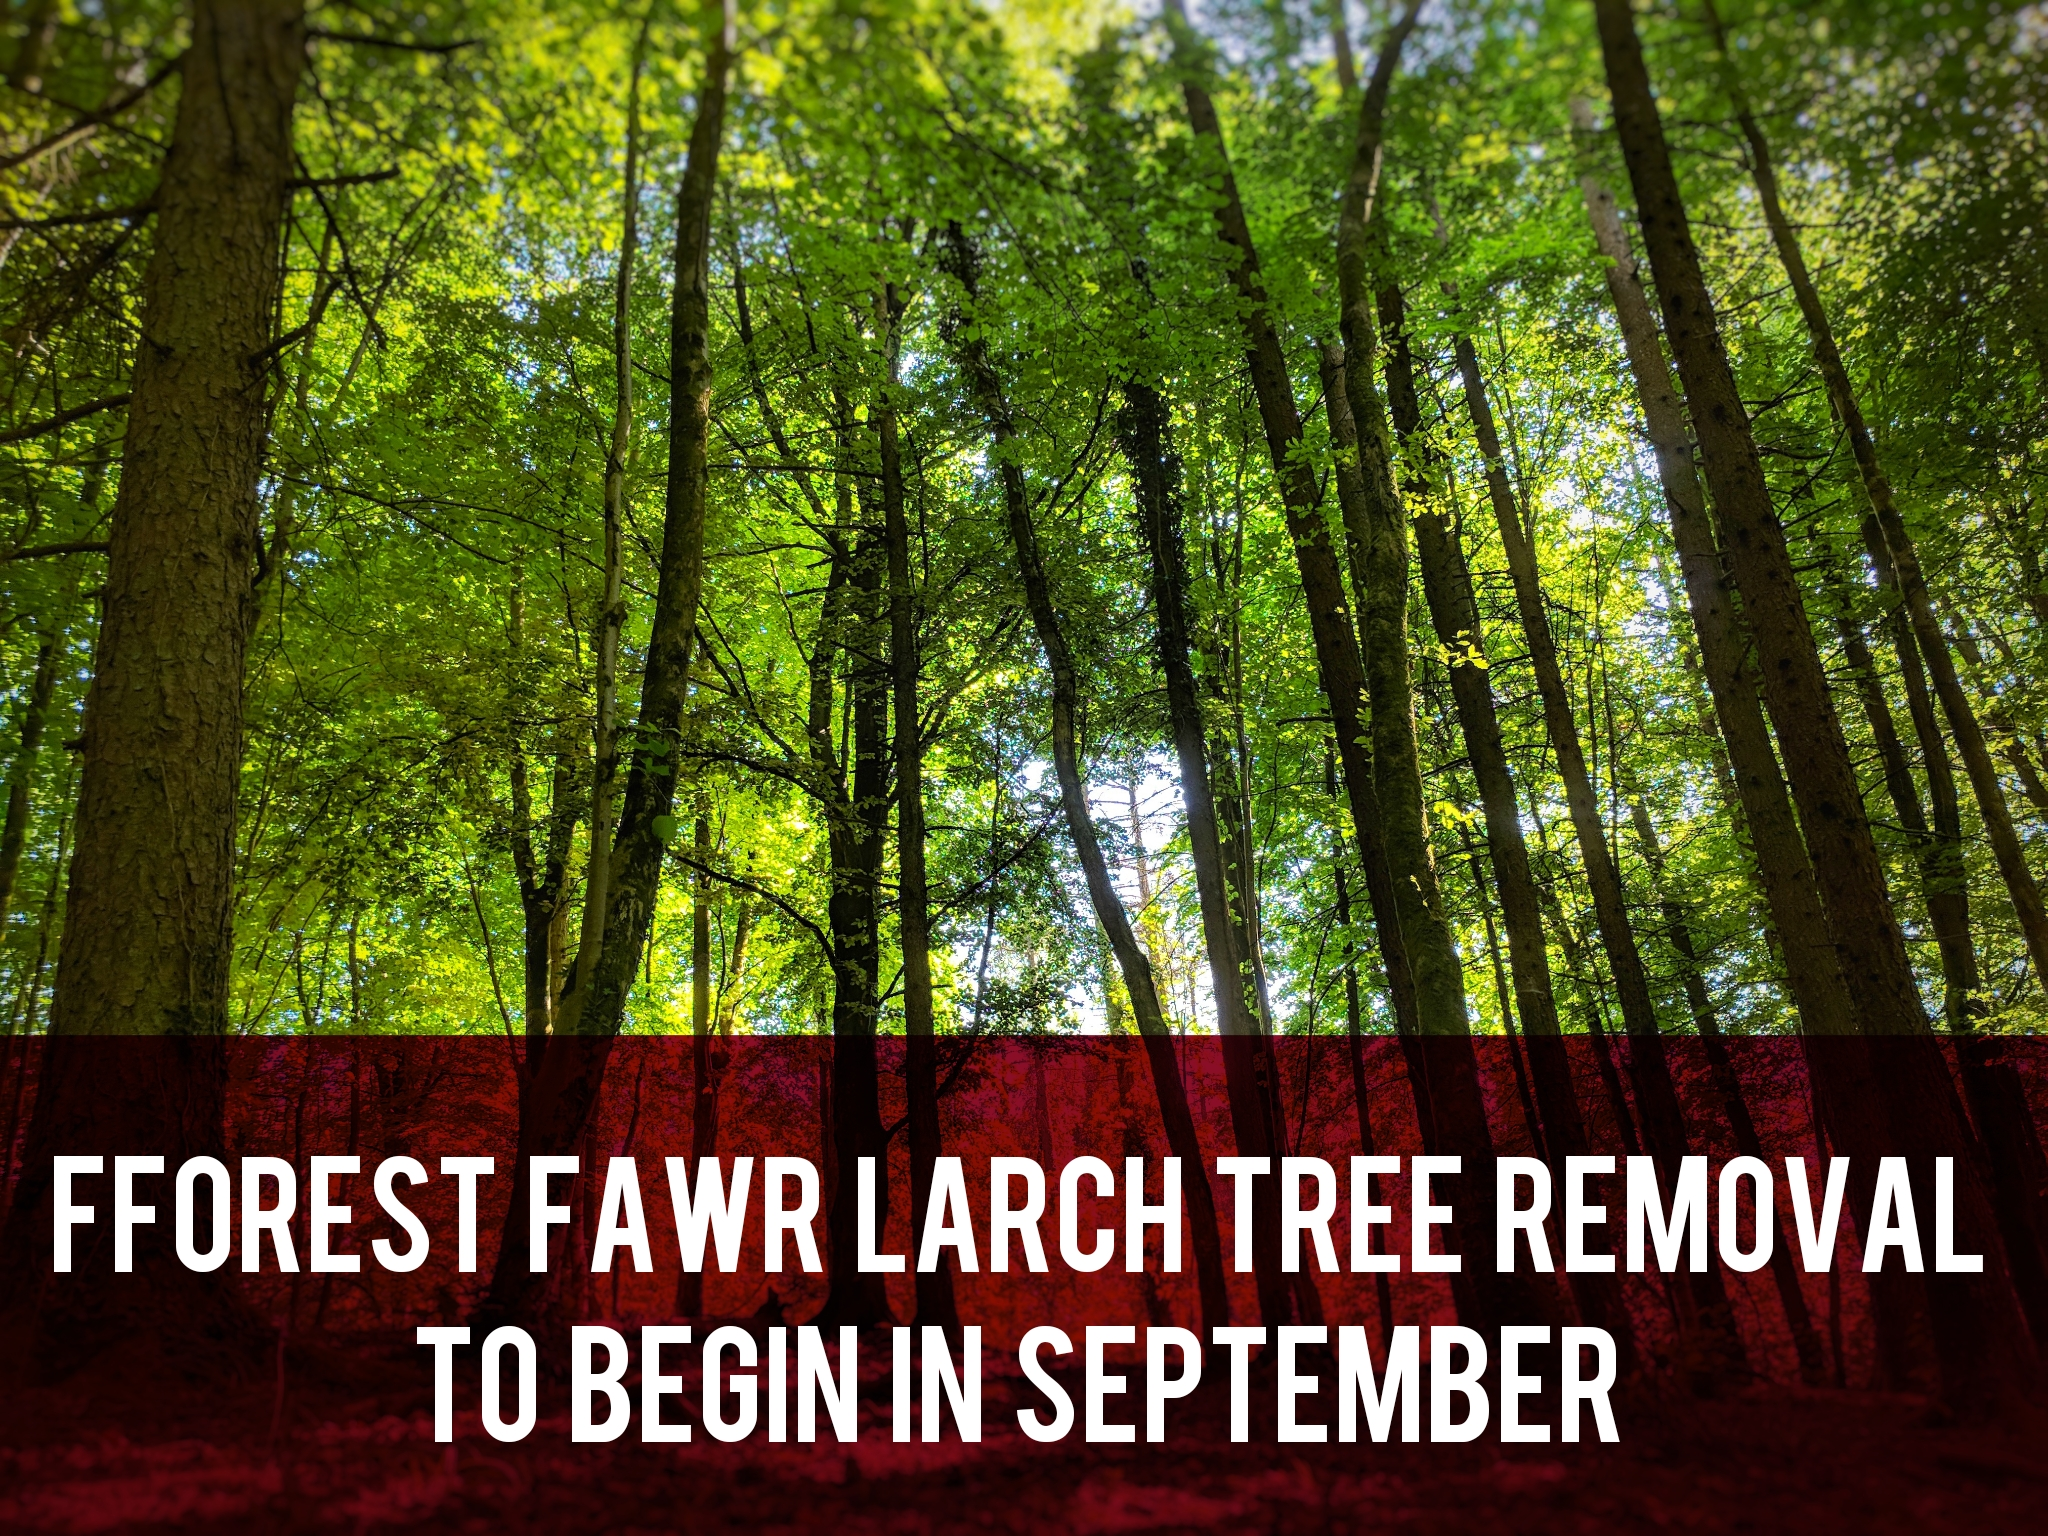 Fforest Fawr Larch Tree Removal header